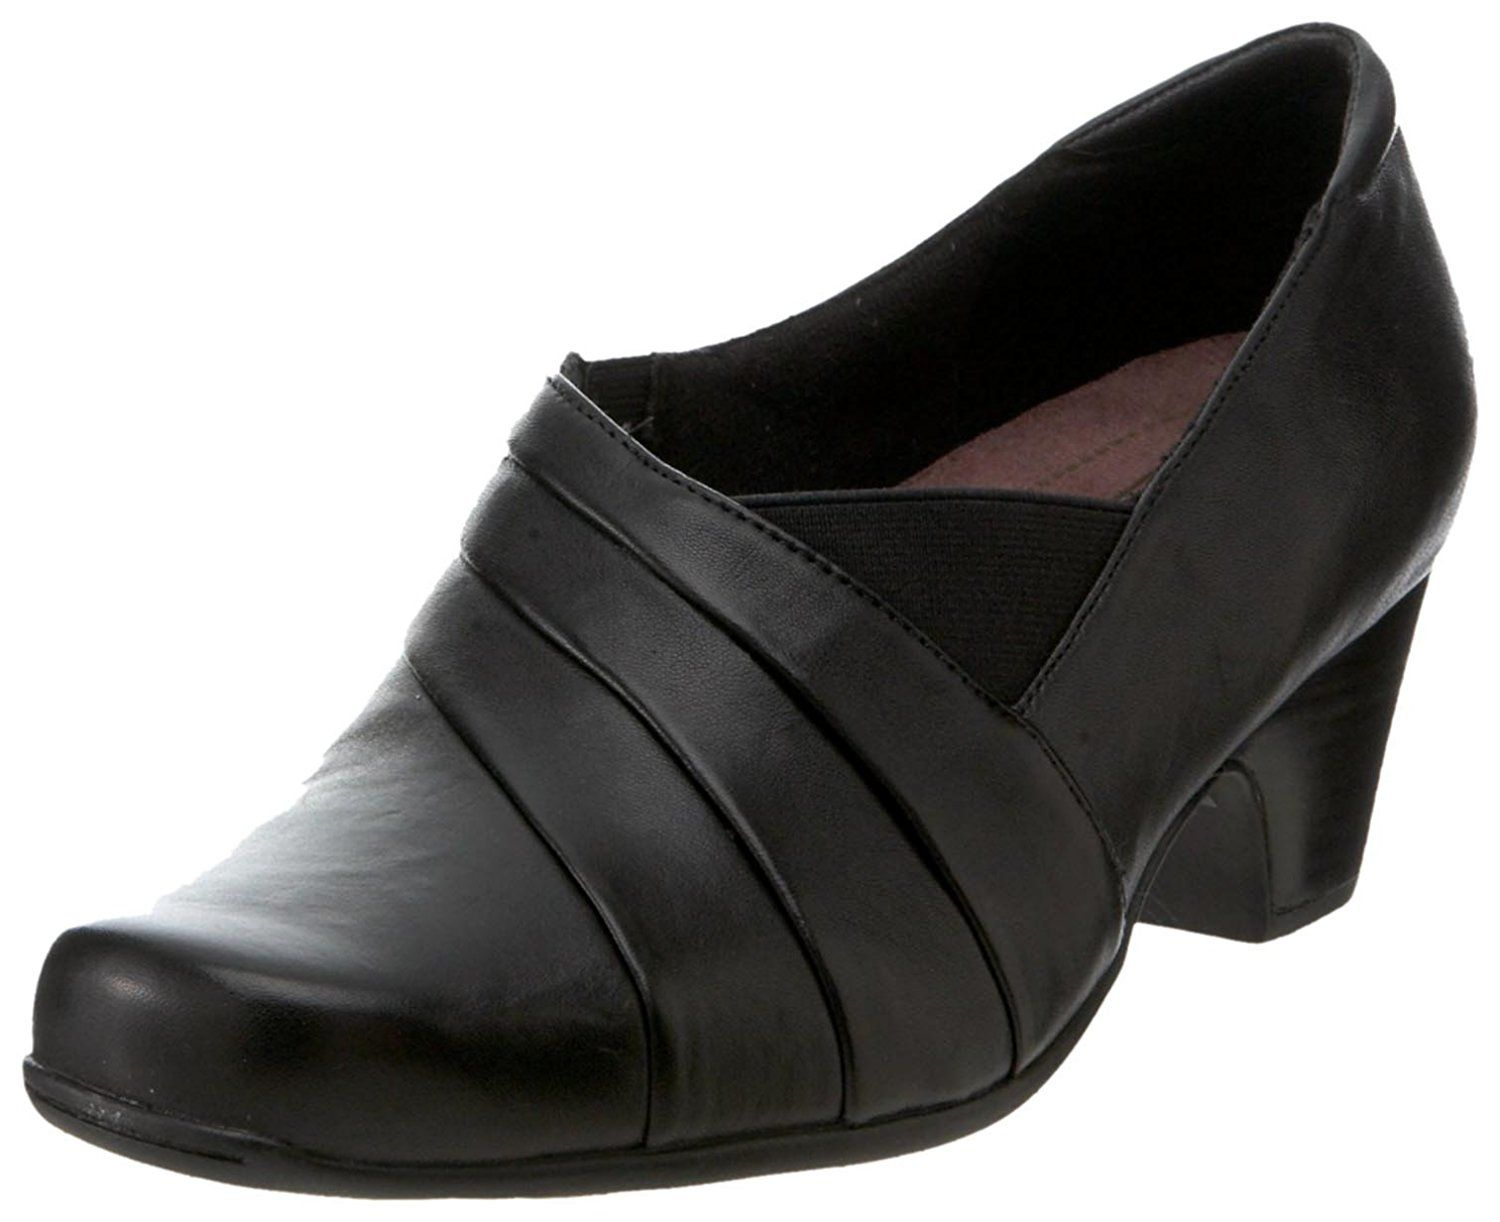 Clarks Women's Sugar Spice Pump *** Find out more about the great product at